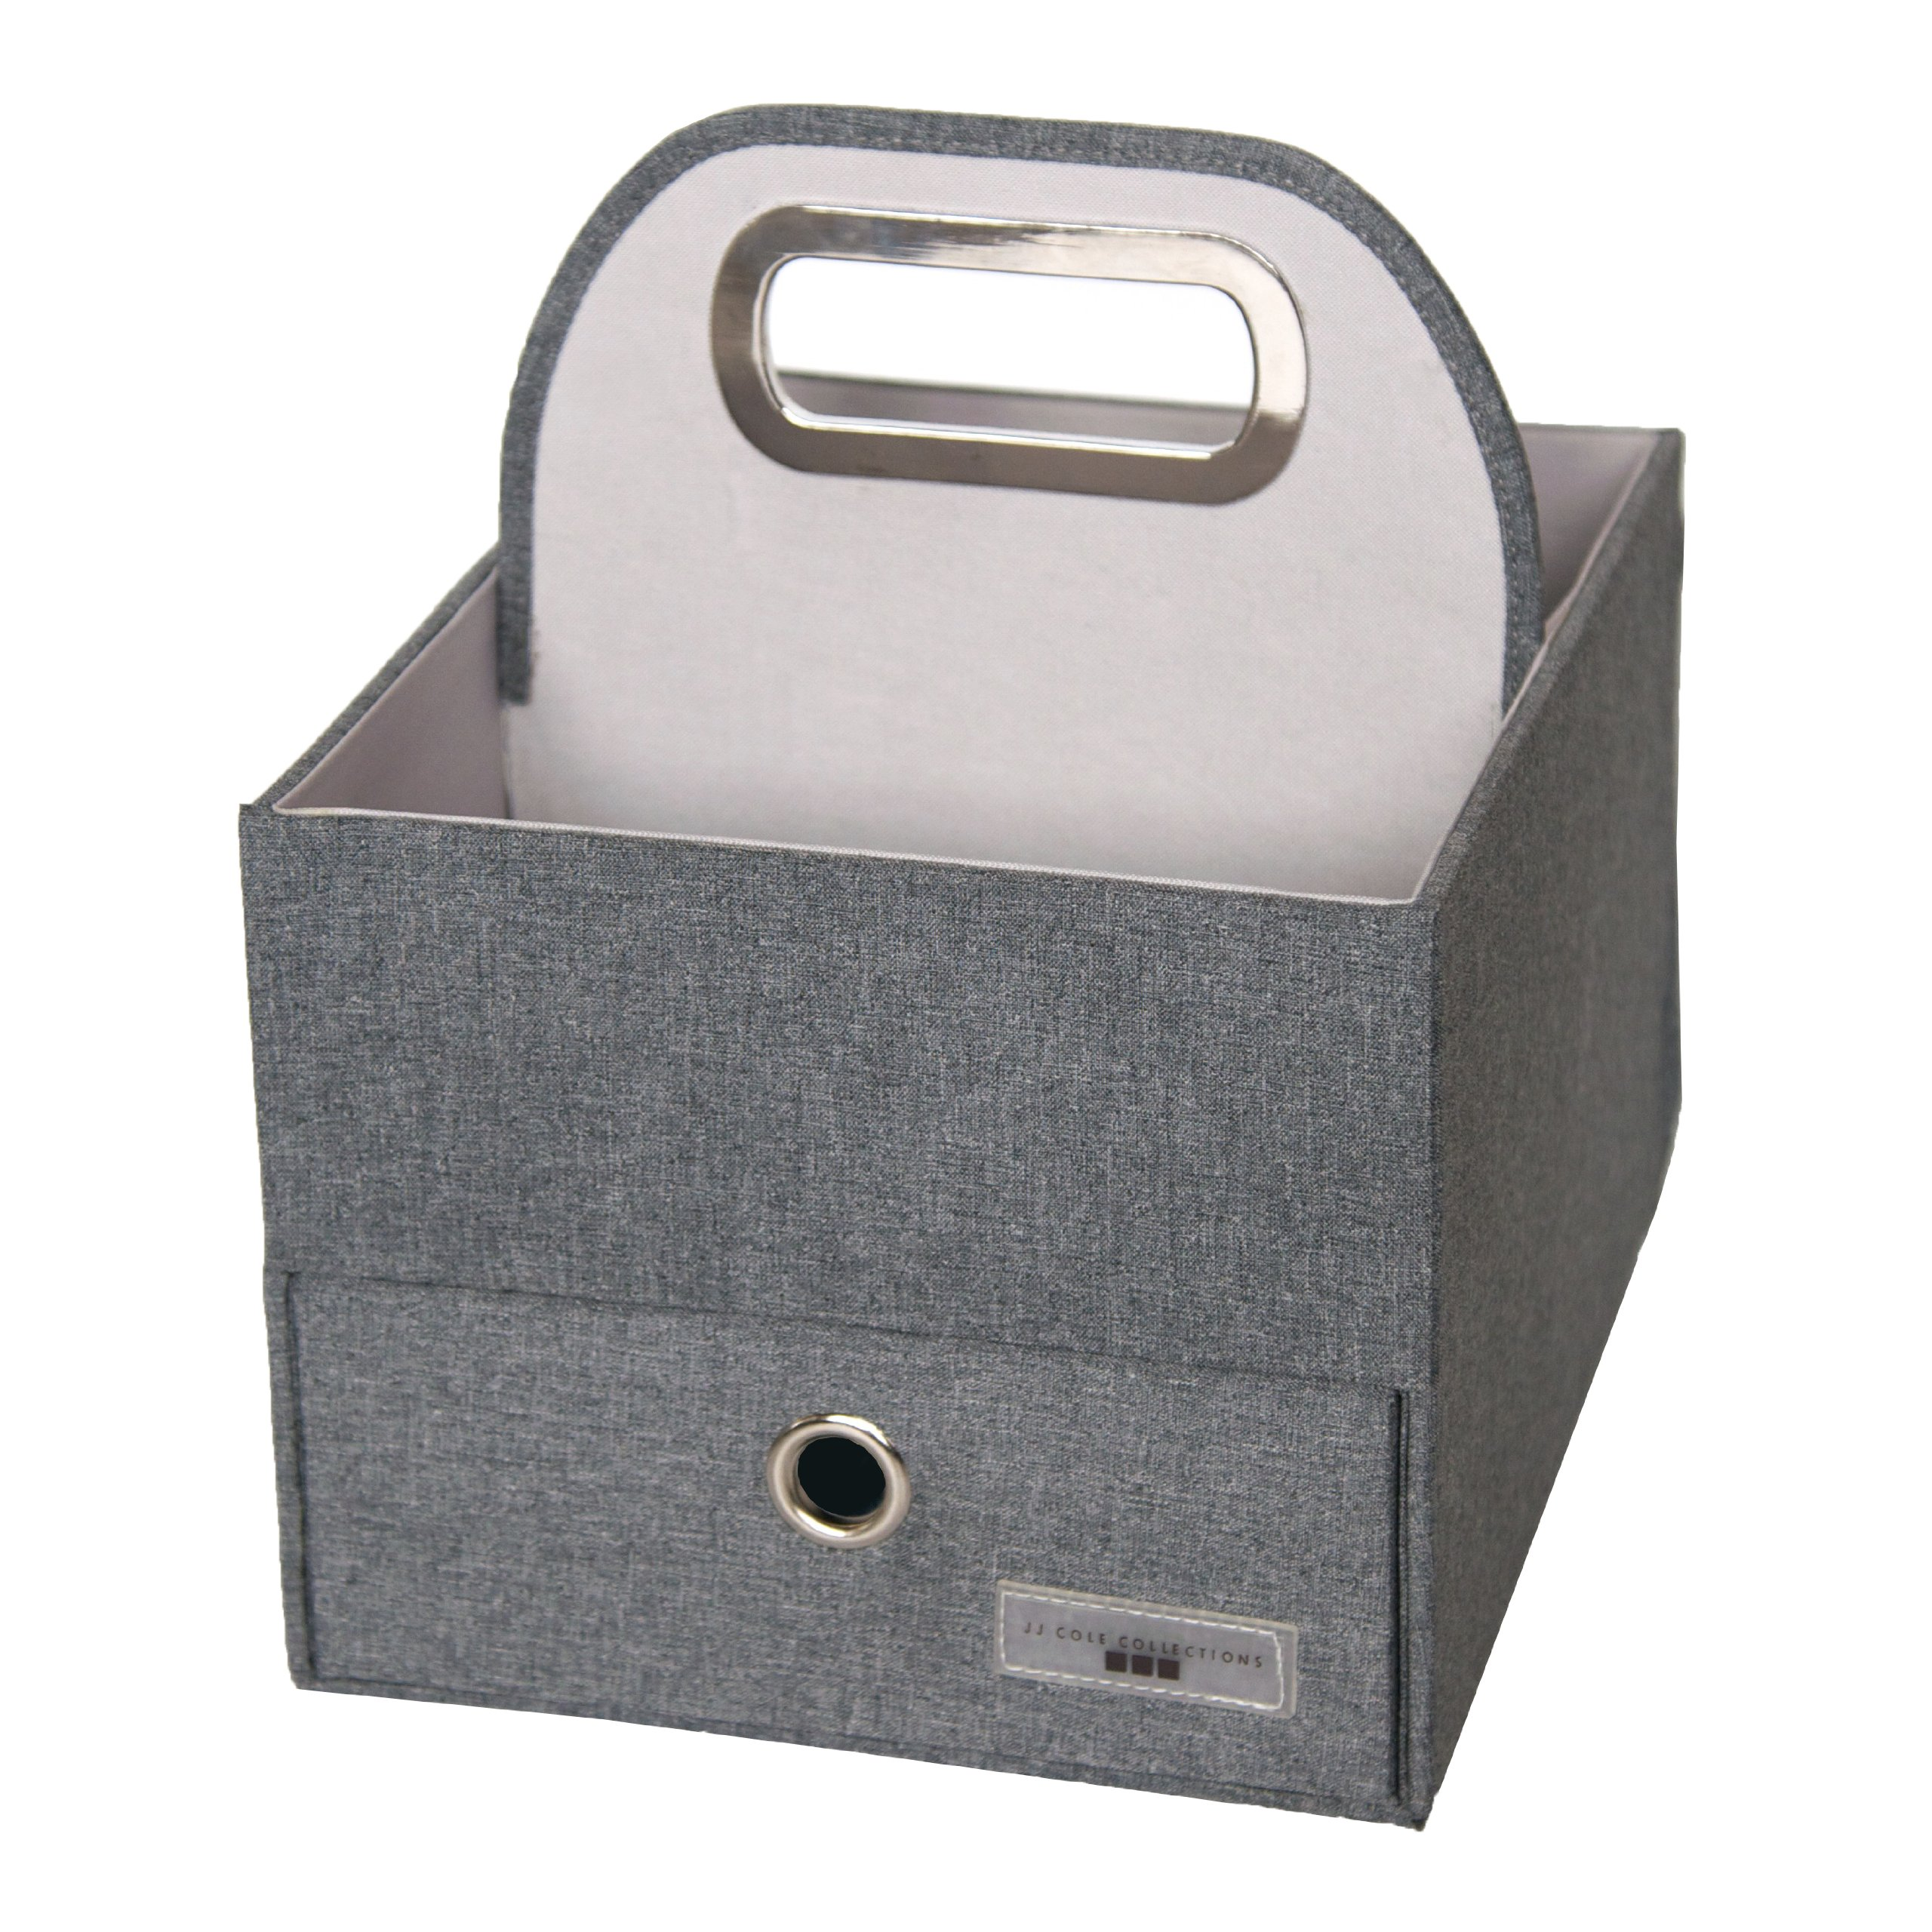 JJ Cole Diaper Caddy - Slate Heather by JJ Cole